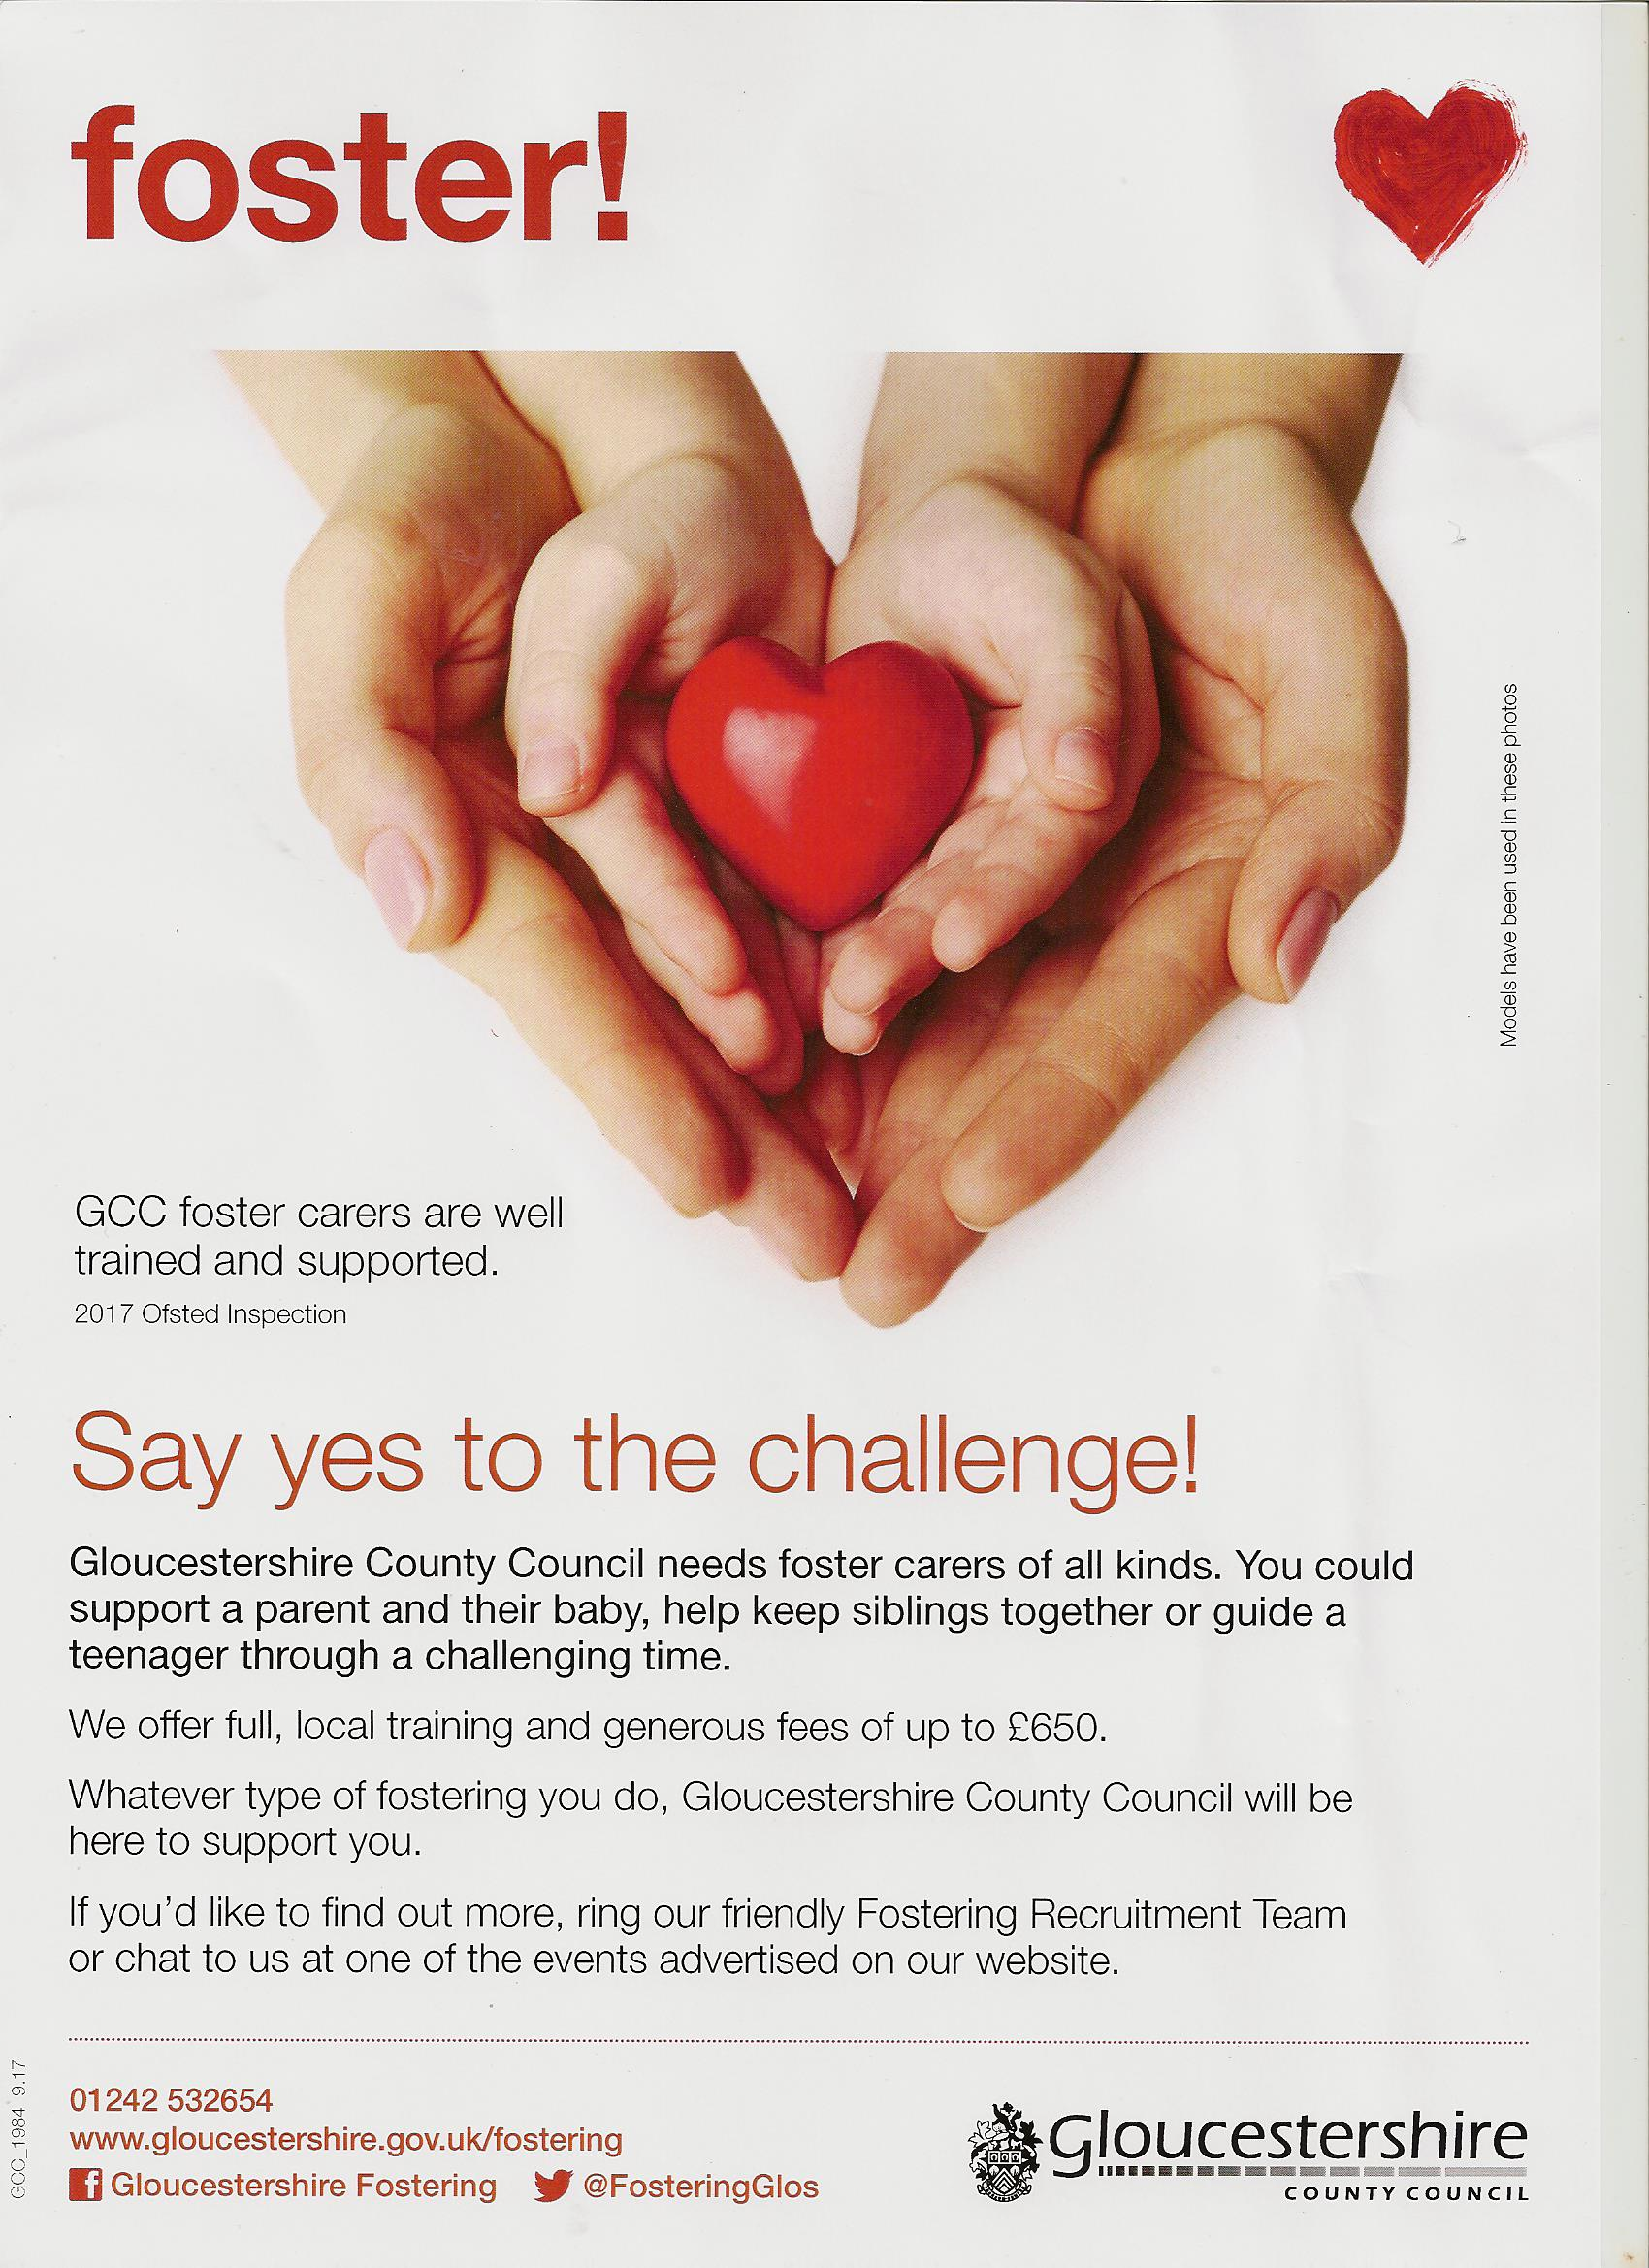 Fostering Poster from GCC